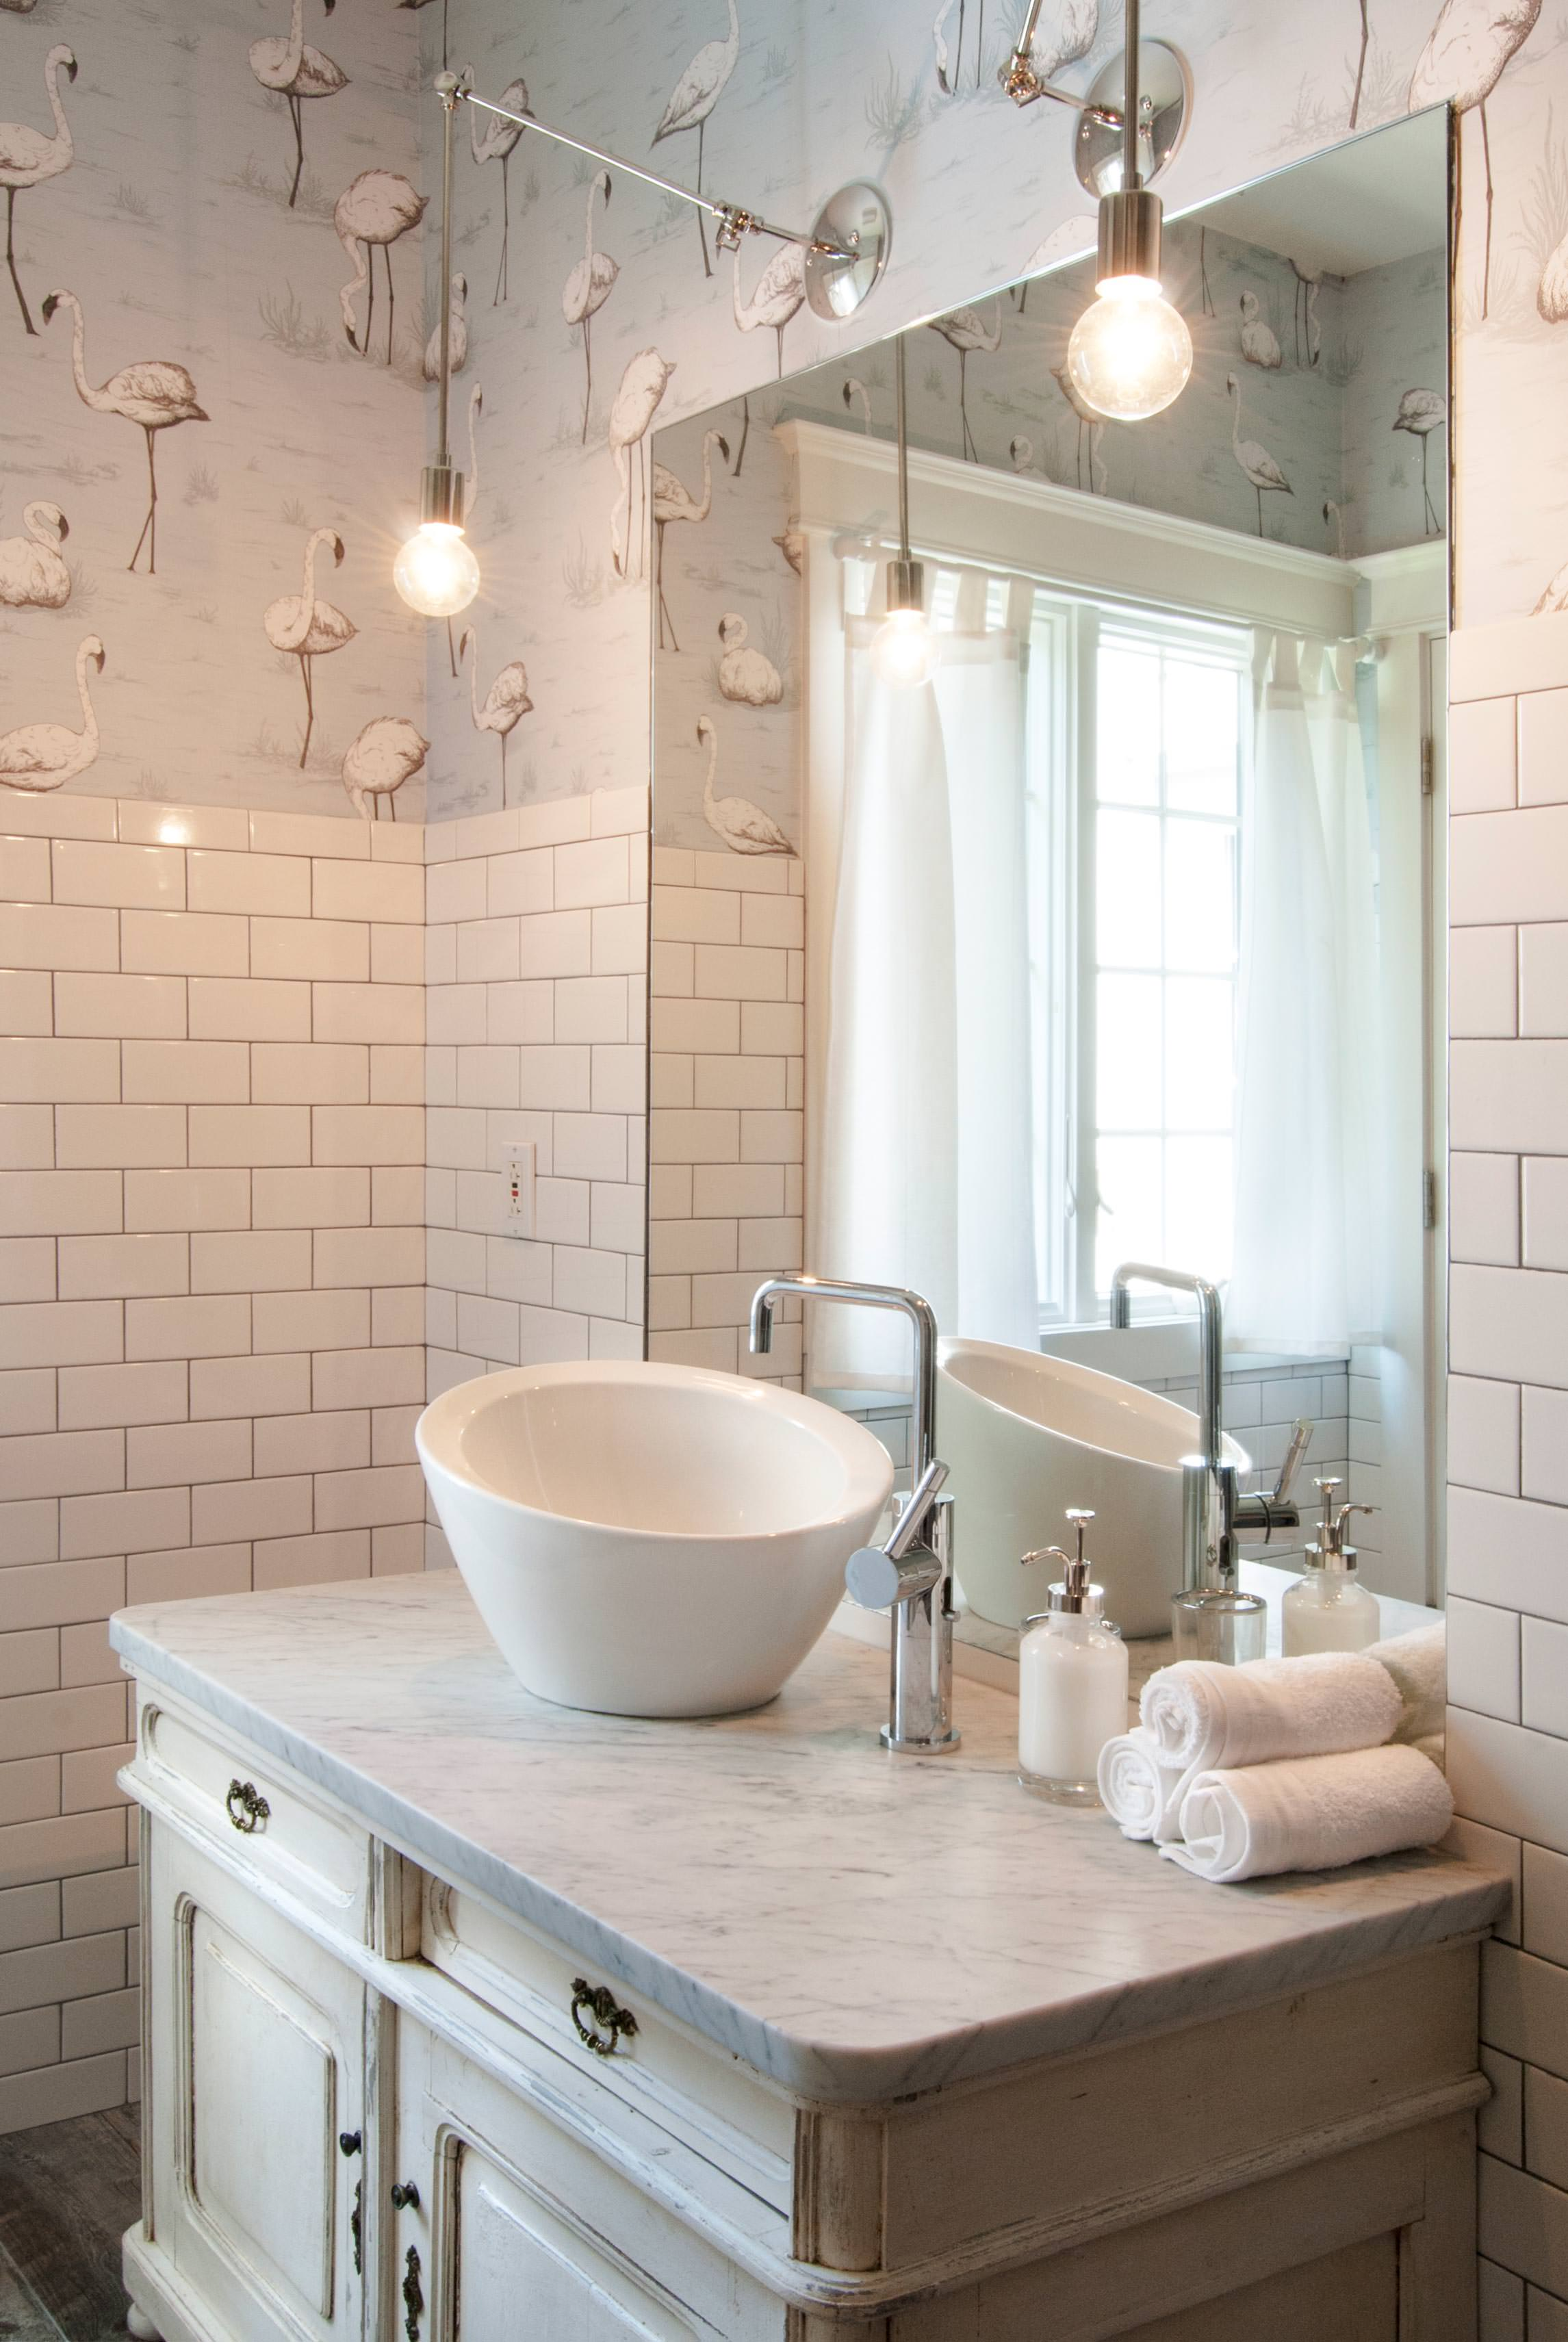 25+ Eclectic Bathroom Ideas And Designs